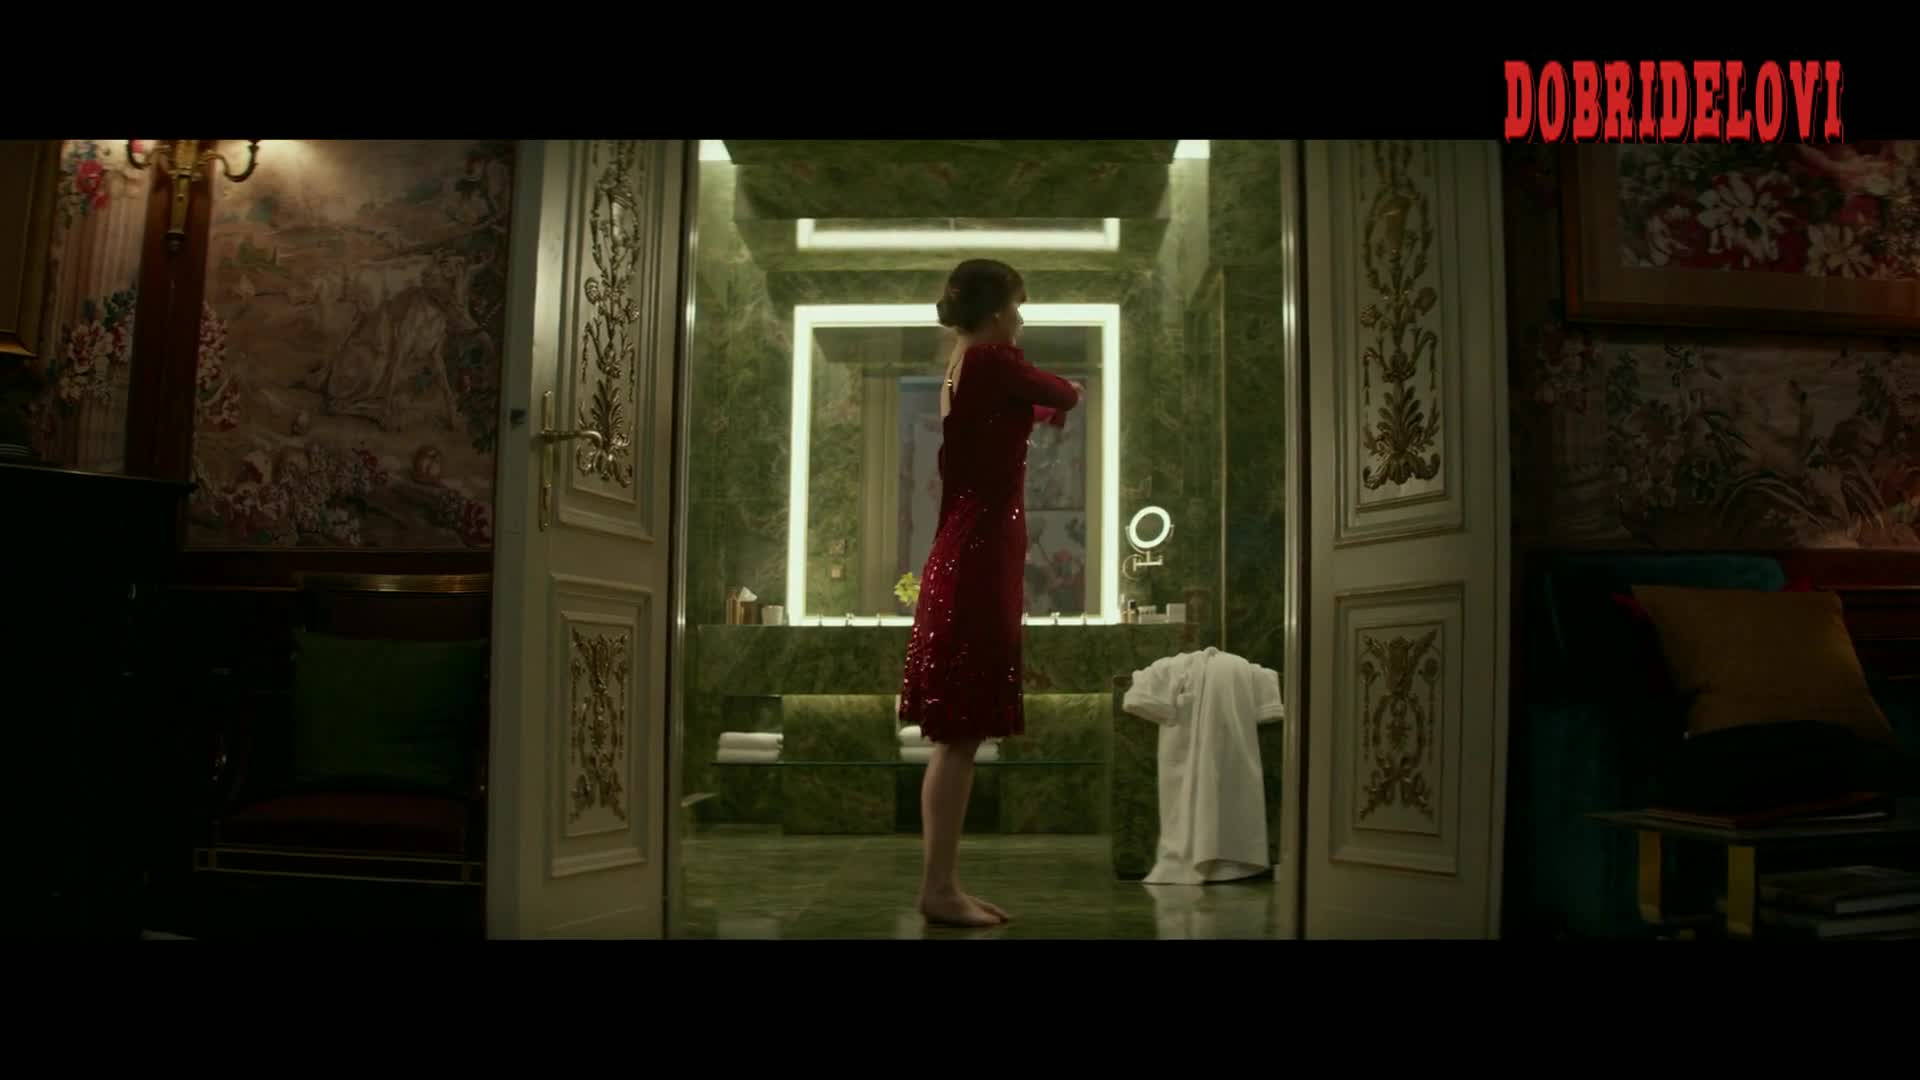 Jennifer Lawrence showers and dresses in red -- Red Sparrow